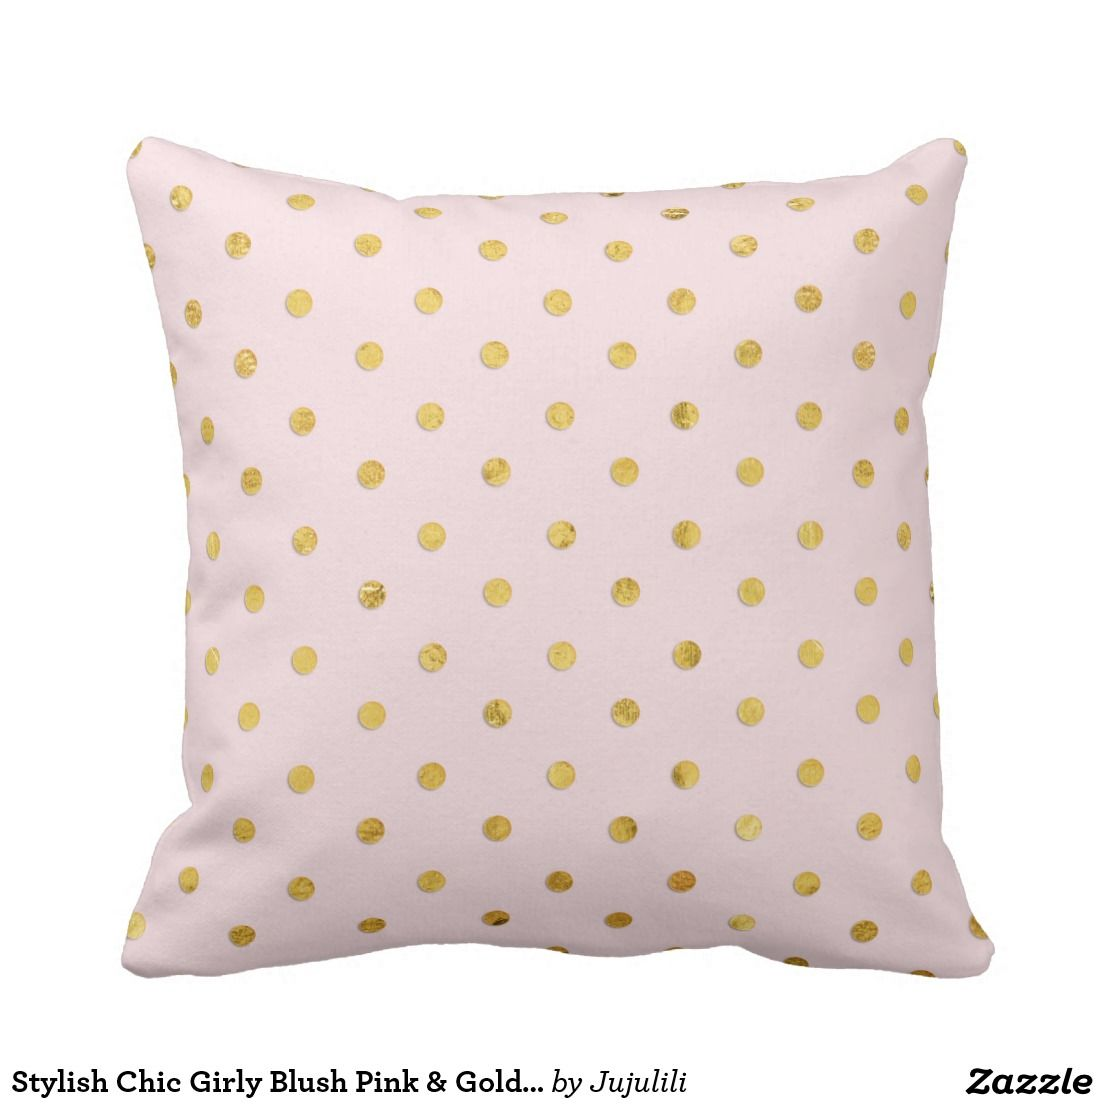 Stylish Chic Girly Blush Pink & Gold Polka Dots